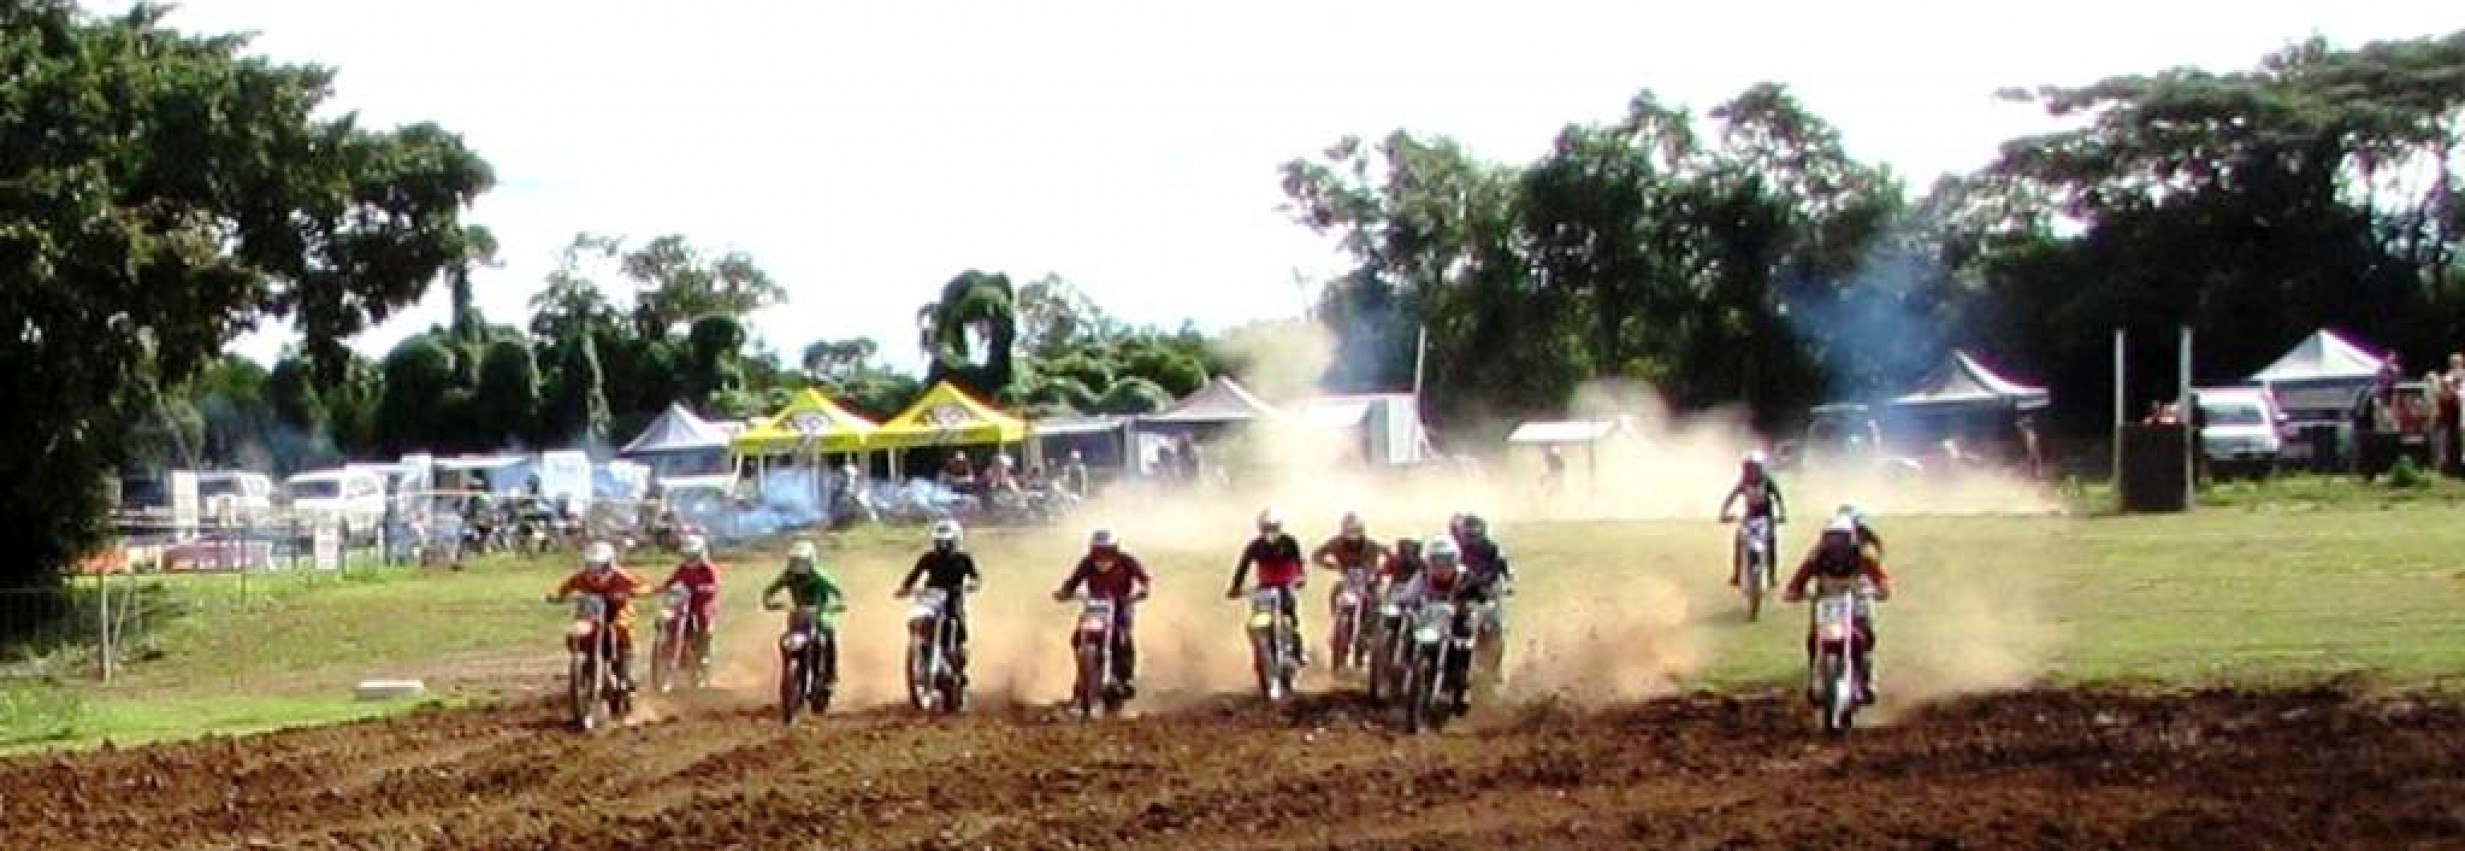 Edmonton Track – Cairns Motorcycle Club